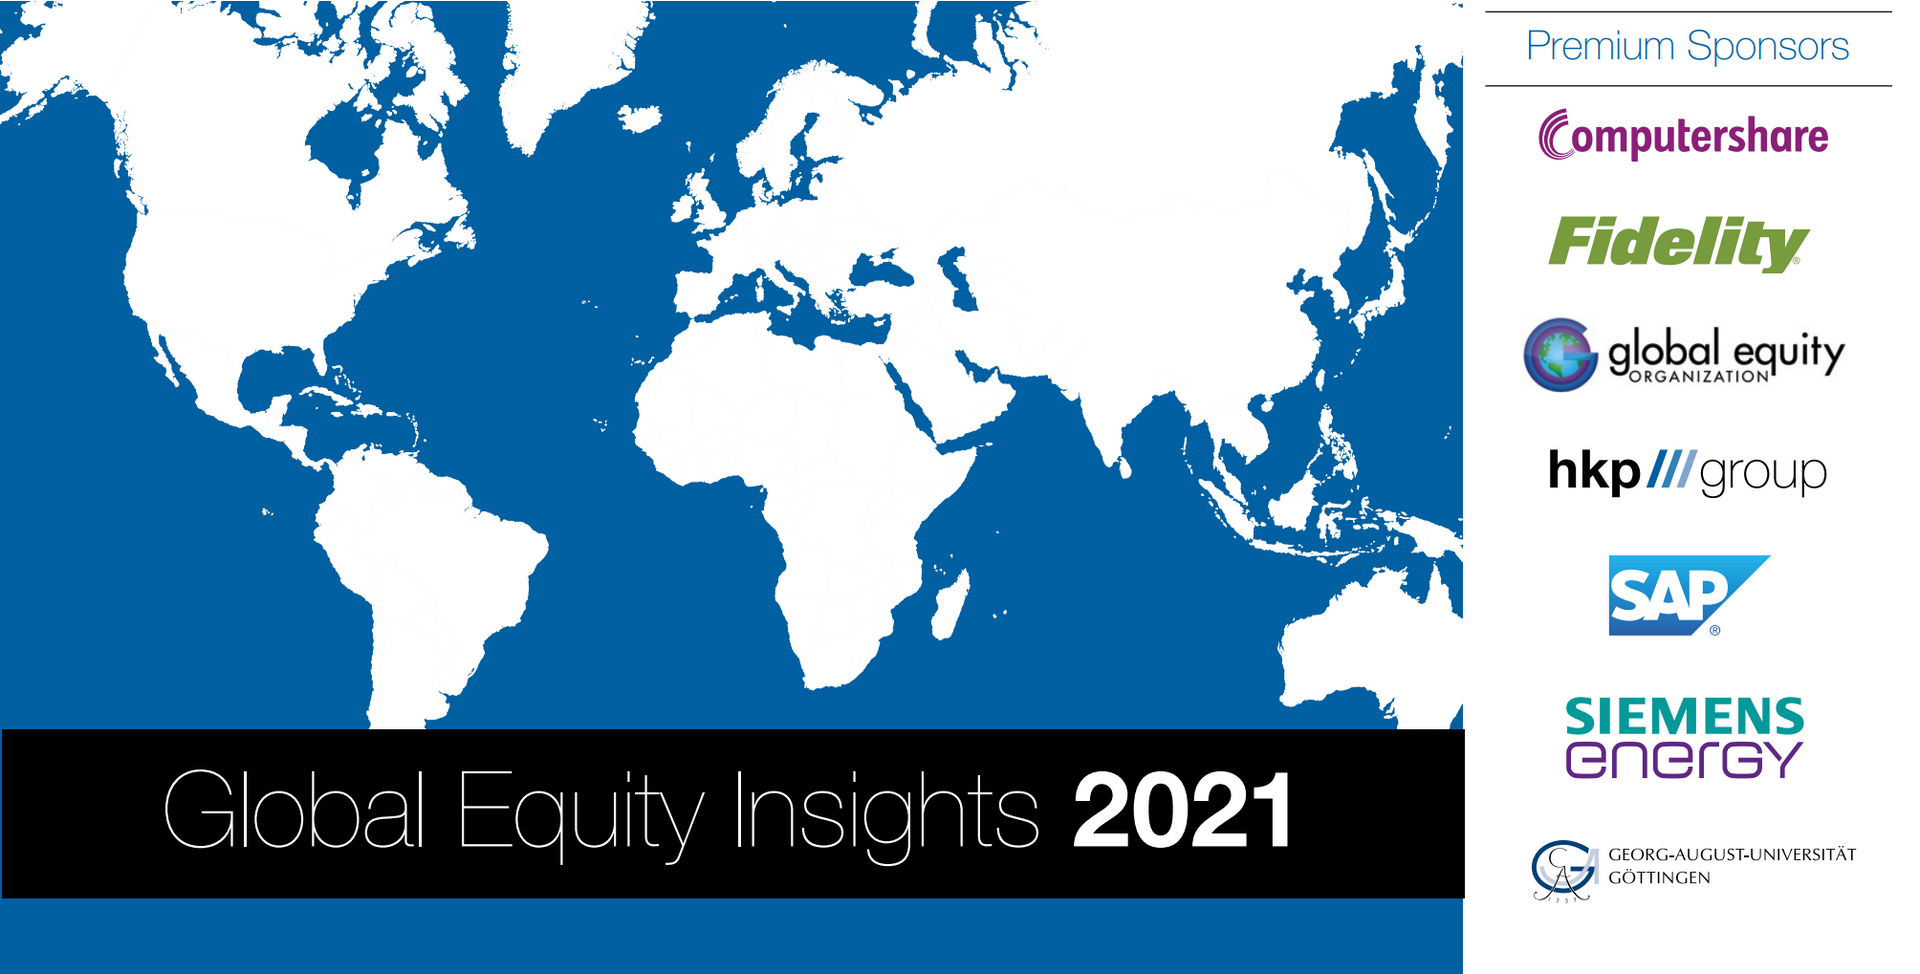 Global Equity Insights 2021